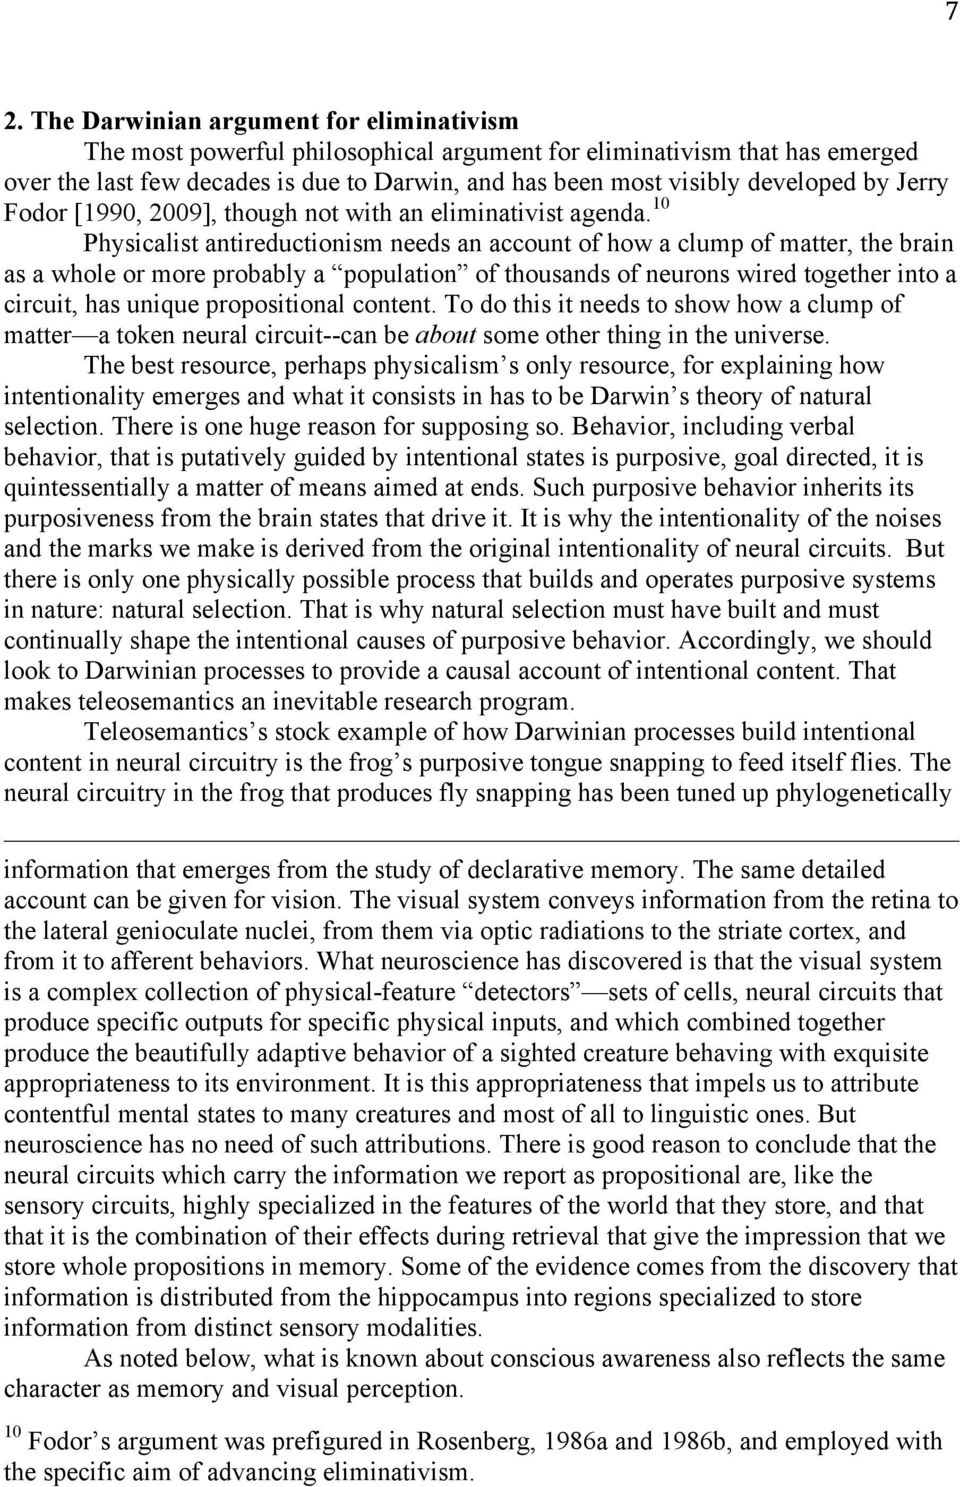 10 Physicalist antireductionism needs an account of how a clump of matter, the brain as a whole or more probably a population of thousands of neurons wired together into a circuit, has unique